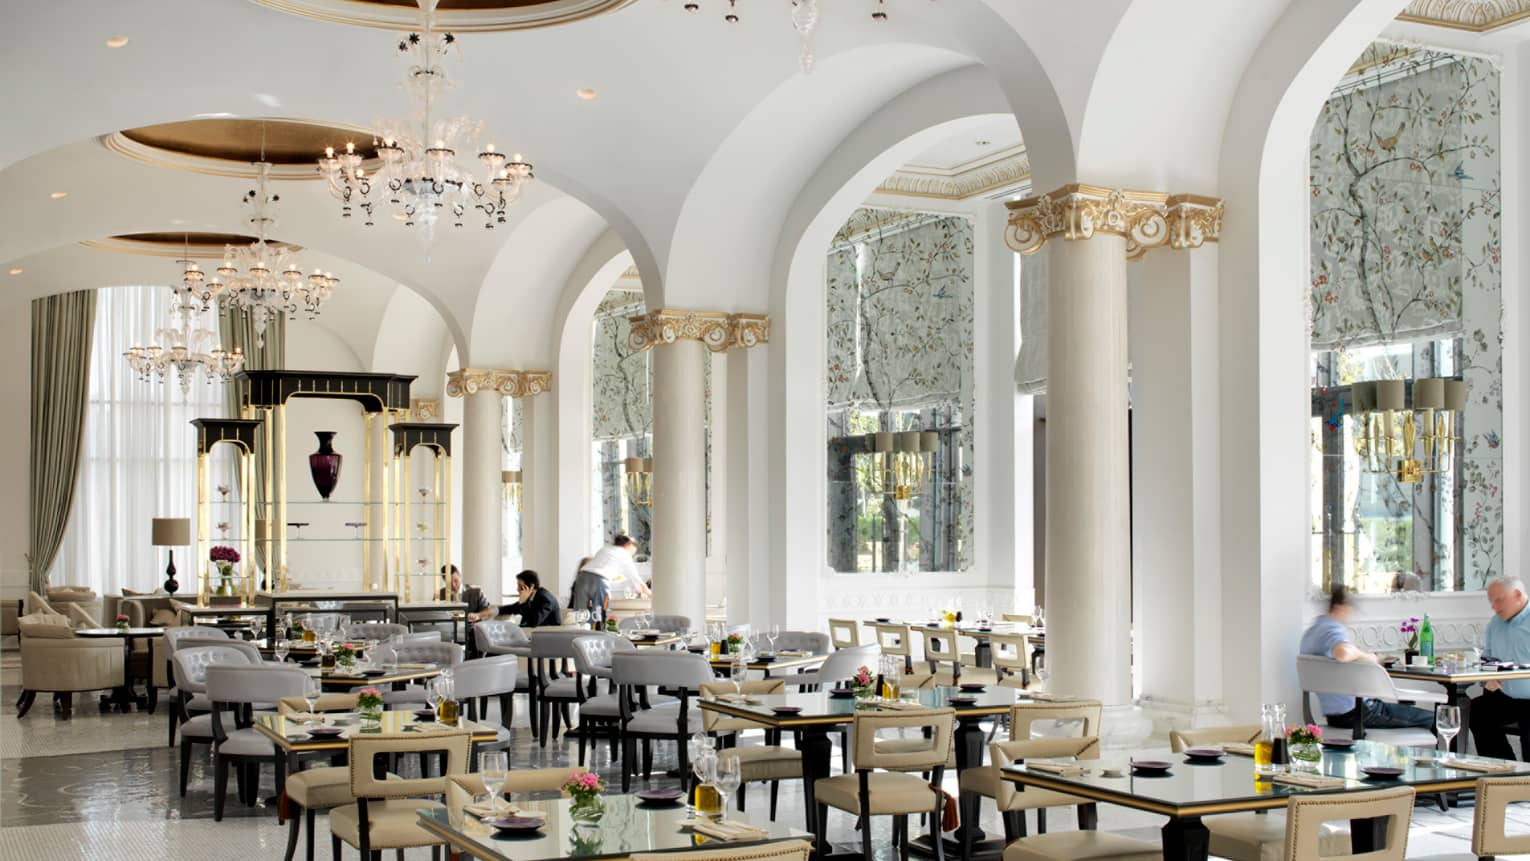 Bright Zafferano dining room with tall sweeping white ceiling, white pillars with decorative gold trim, tables and chairs below